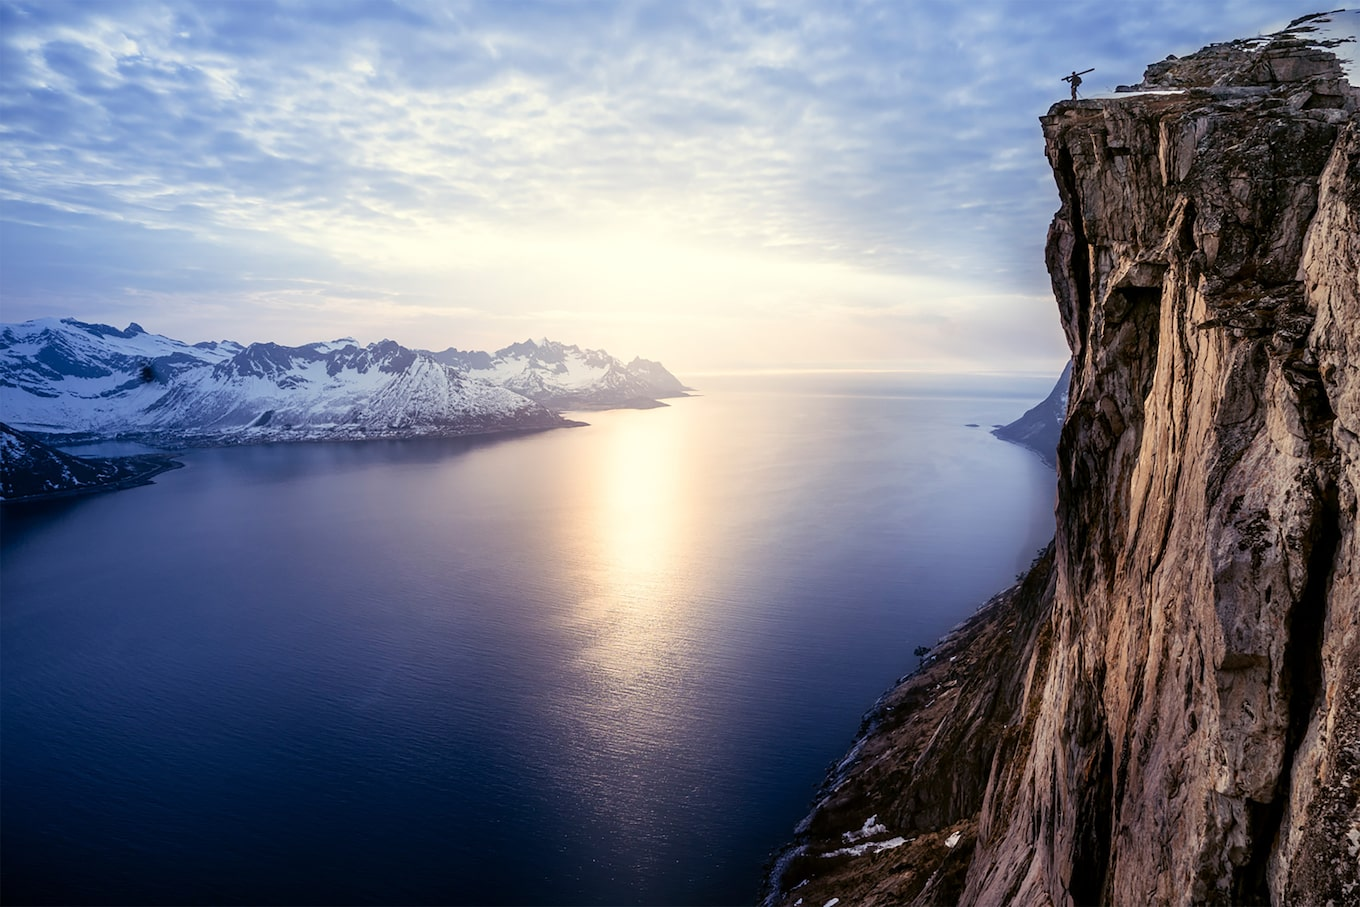 Daniel Ronnback sony alpha 9 skier stands on the edge of a cliff with a sea and mountains landscape